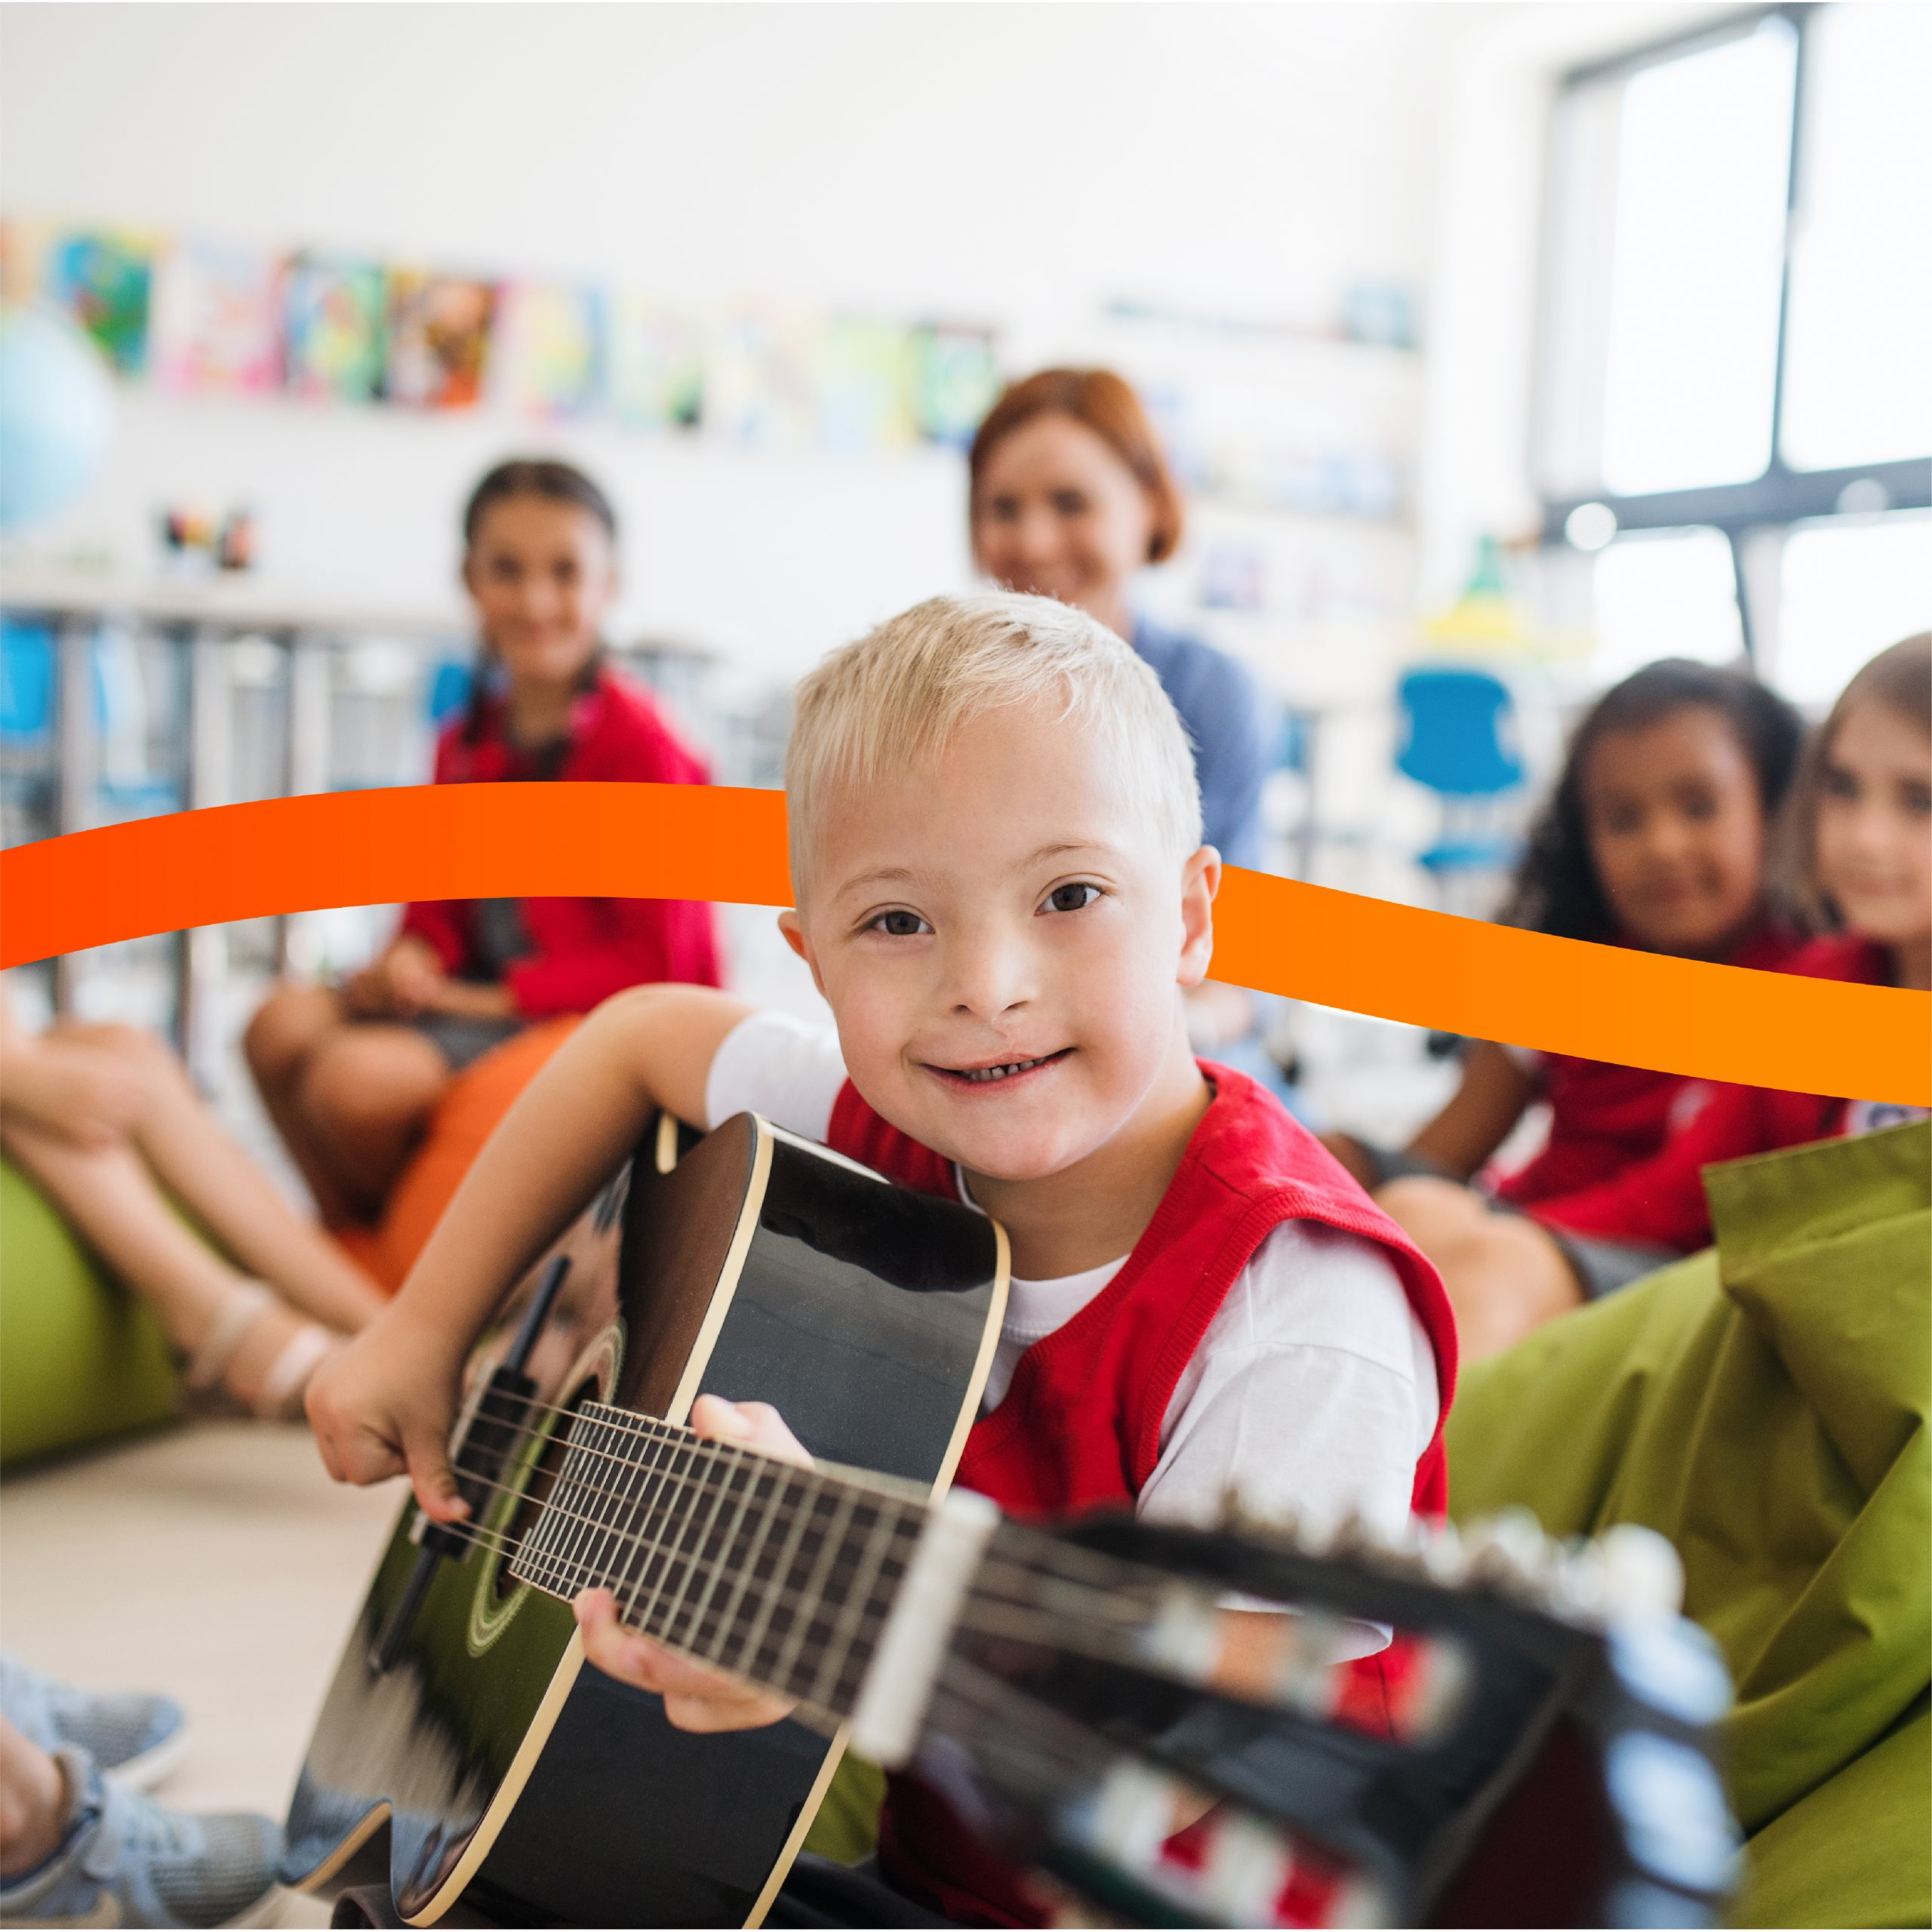 Young boy Down's syndrome playing guitar with other children and teacher in the background